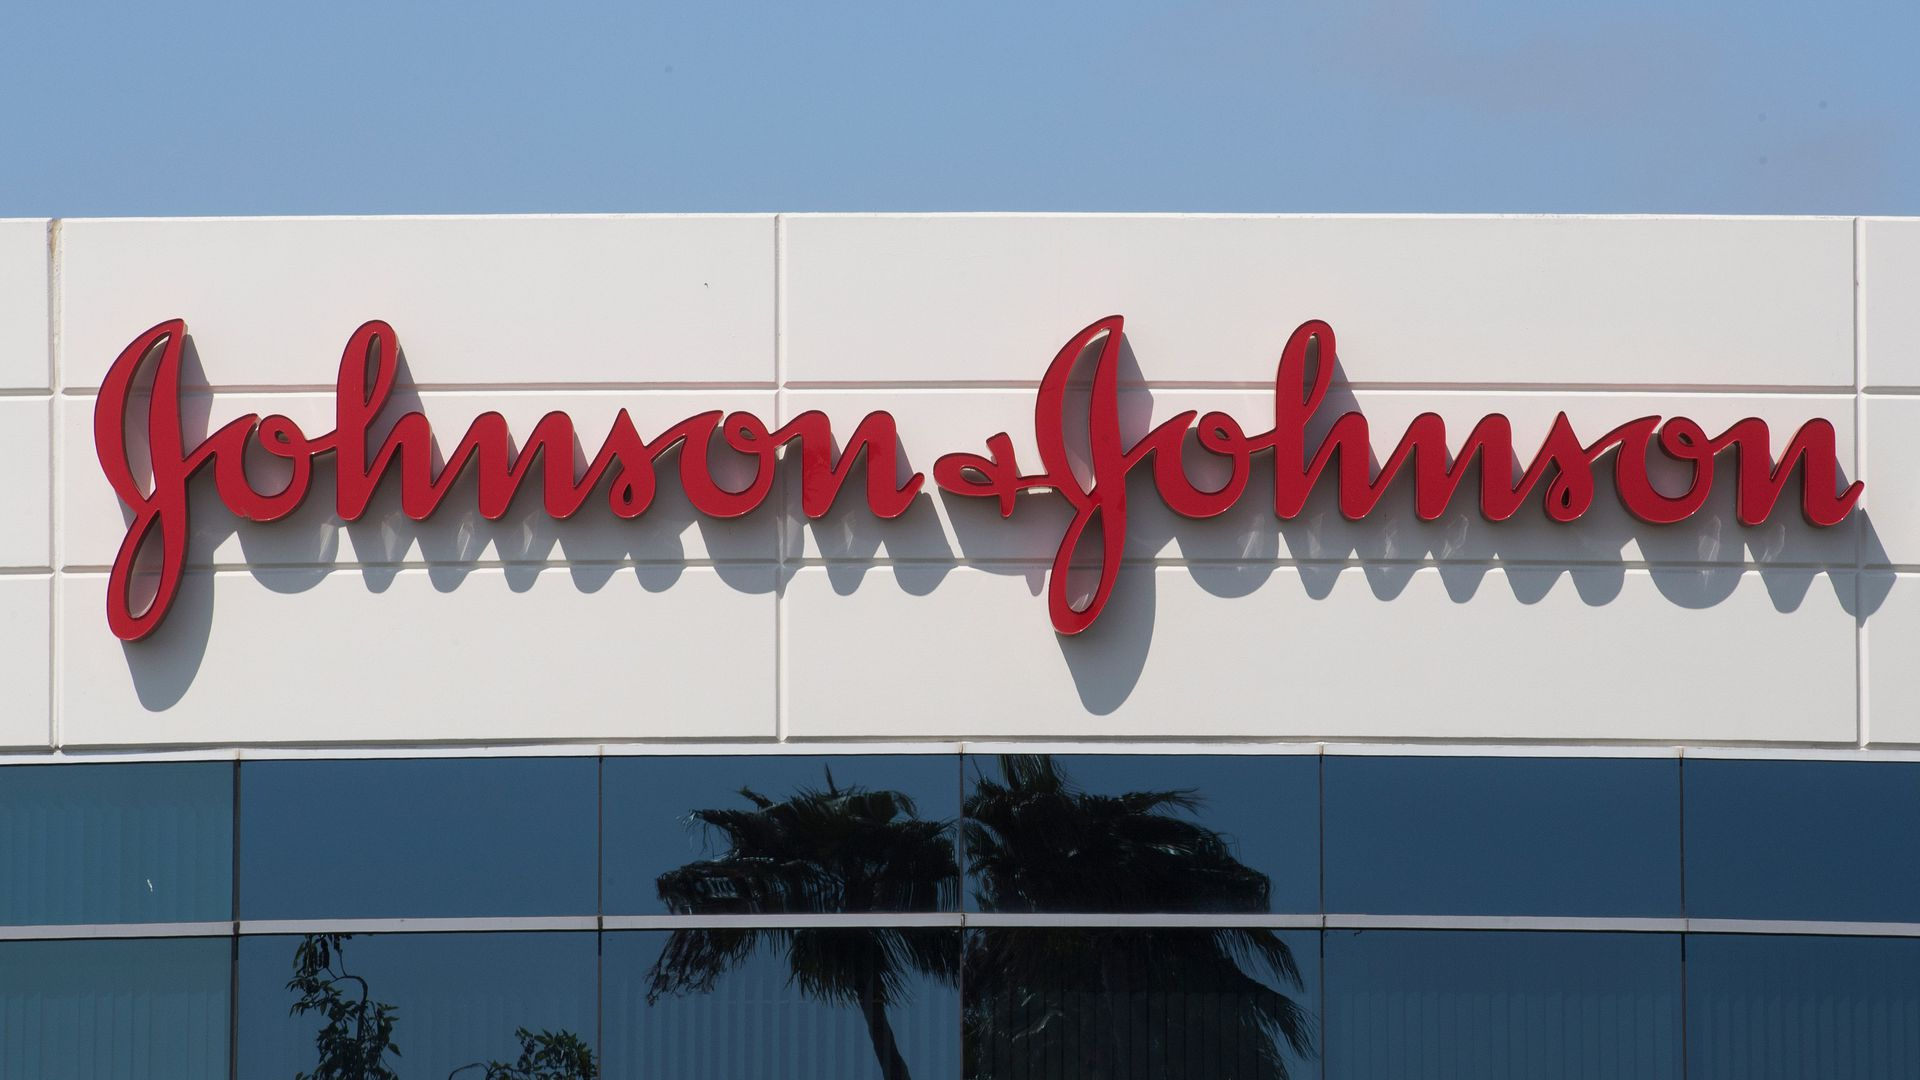 The red Johnson & Johnson logo on a building.